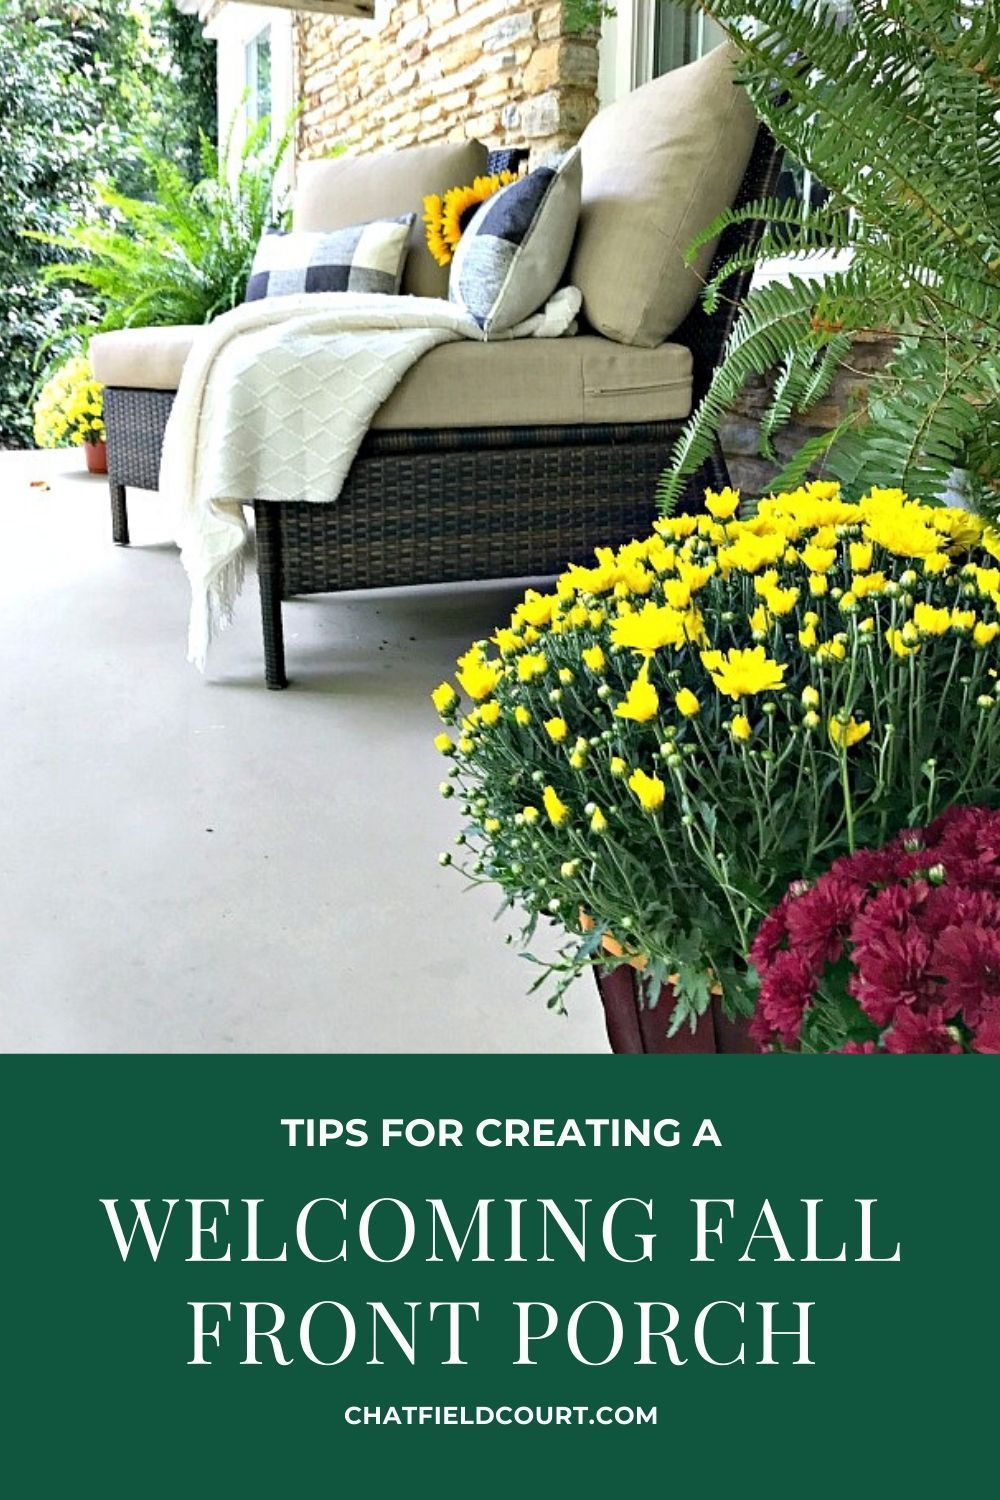 5 Tips to help you create a welcoming fall front porch including adding fall color and texture.